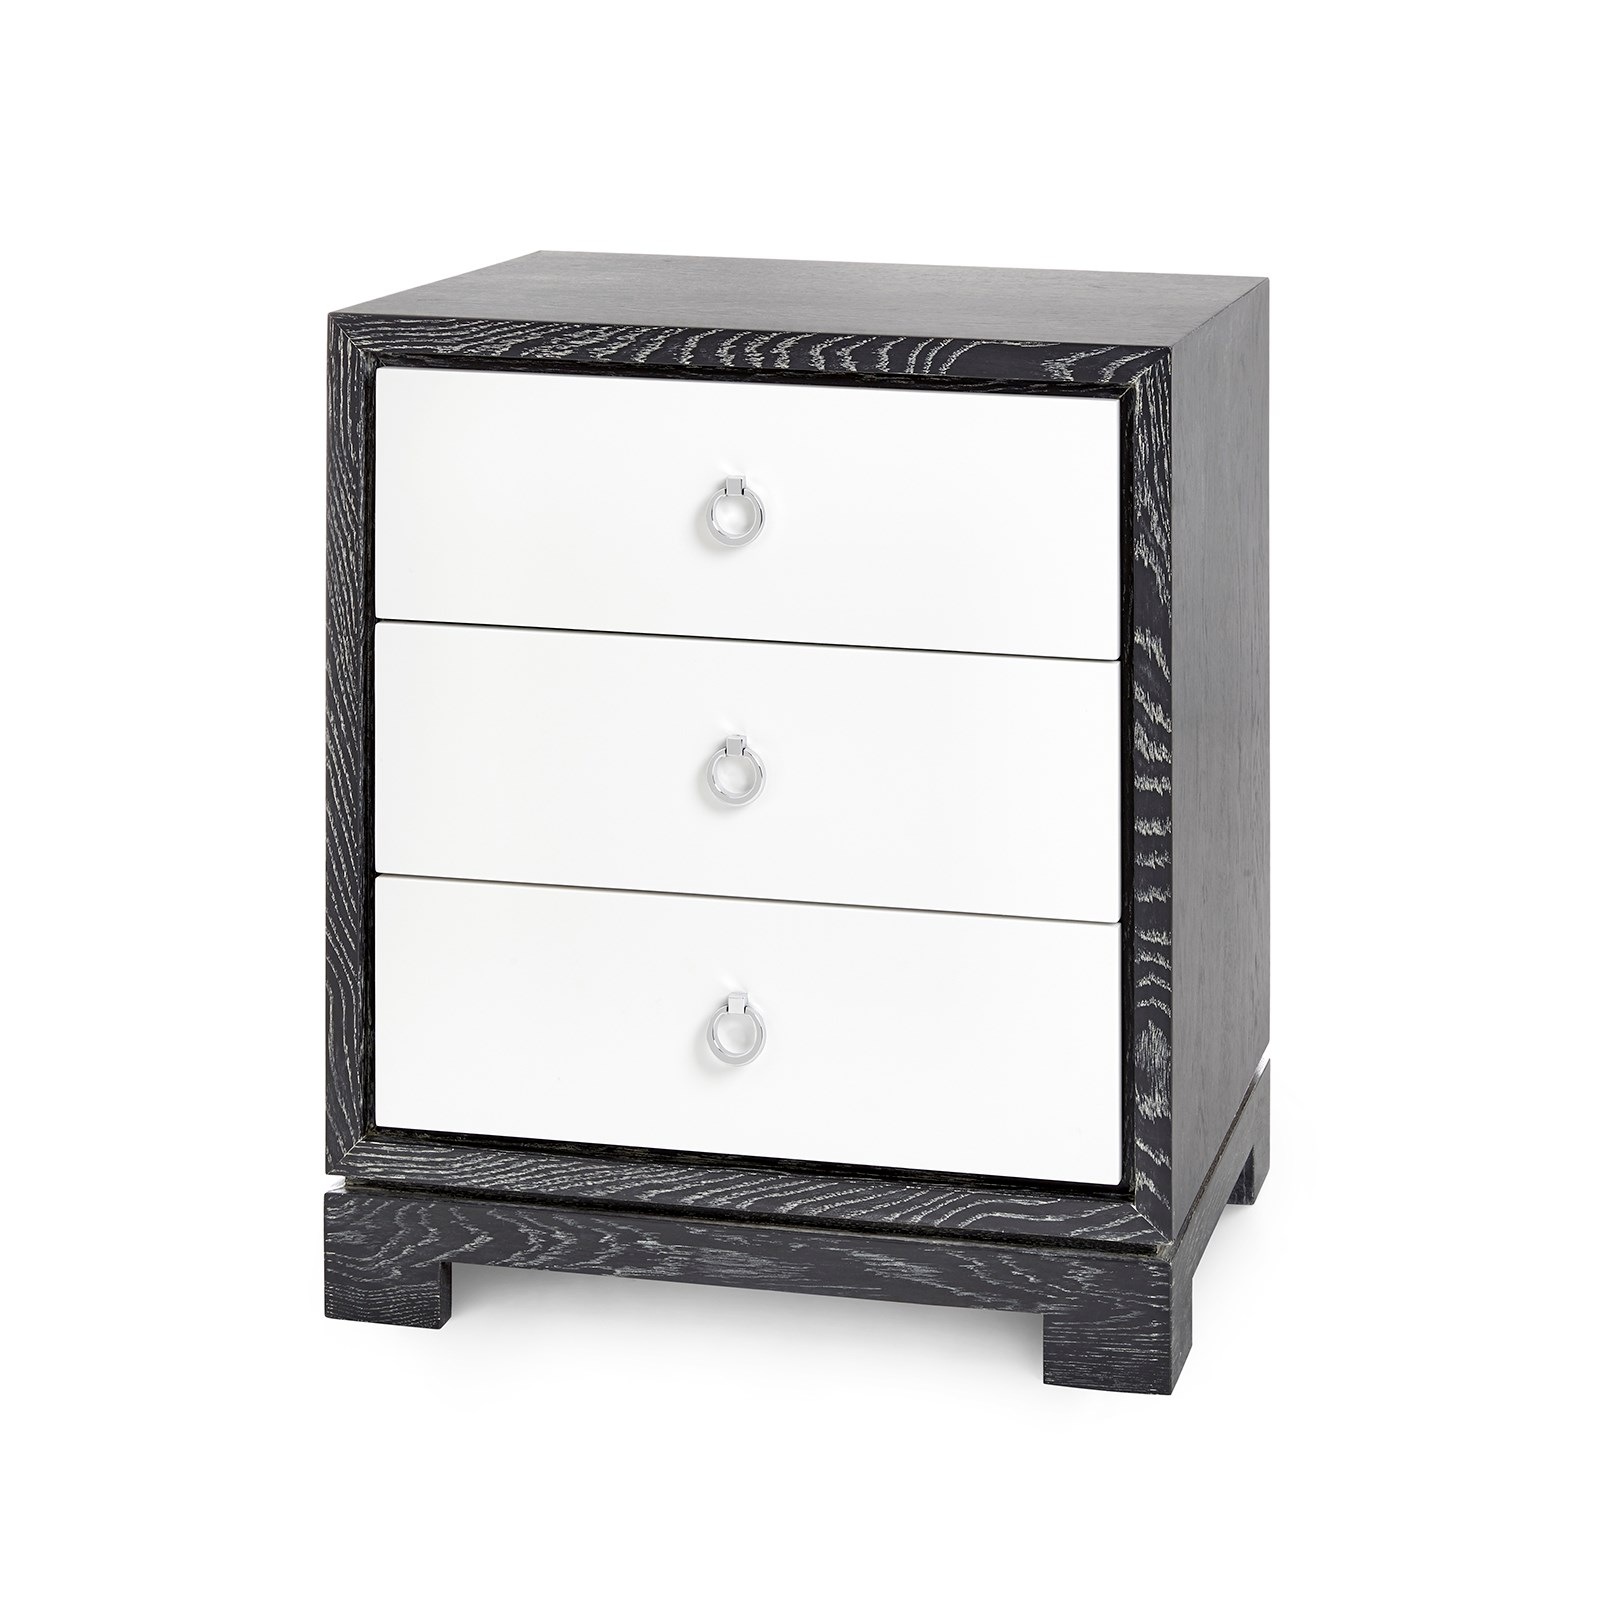 berkeley 3 drawer side table w chrome pulls gray bungalow 5 bungalow 5 white lacquered